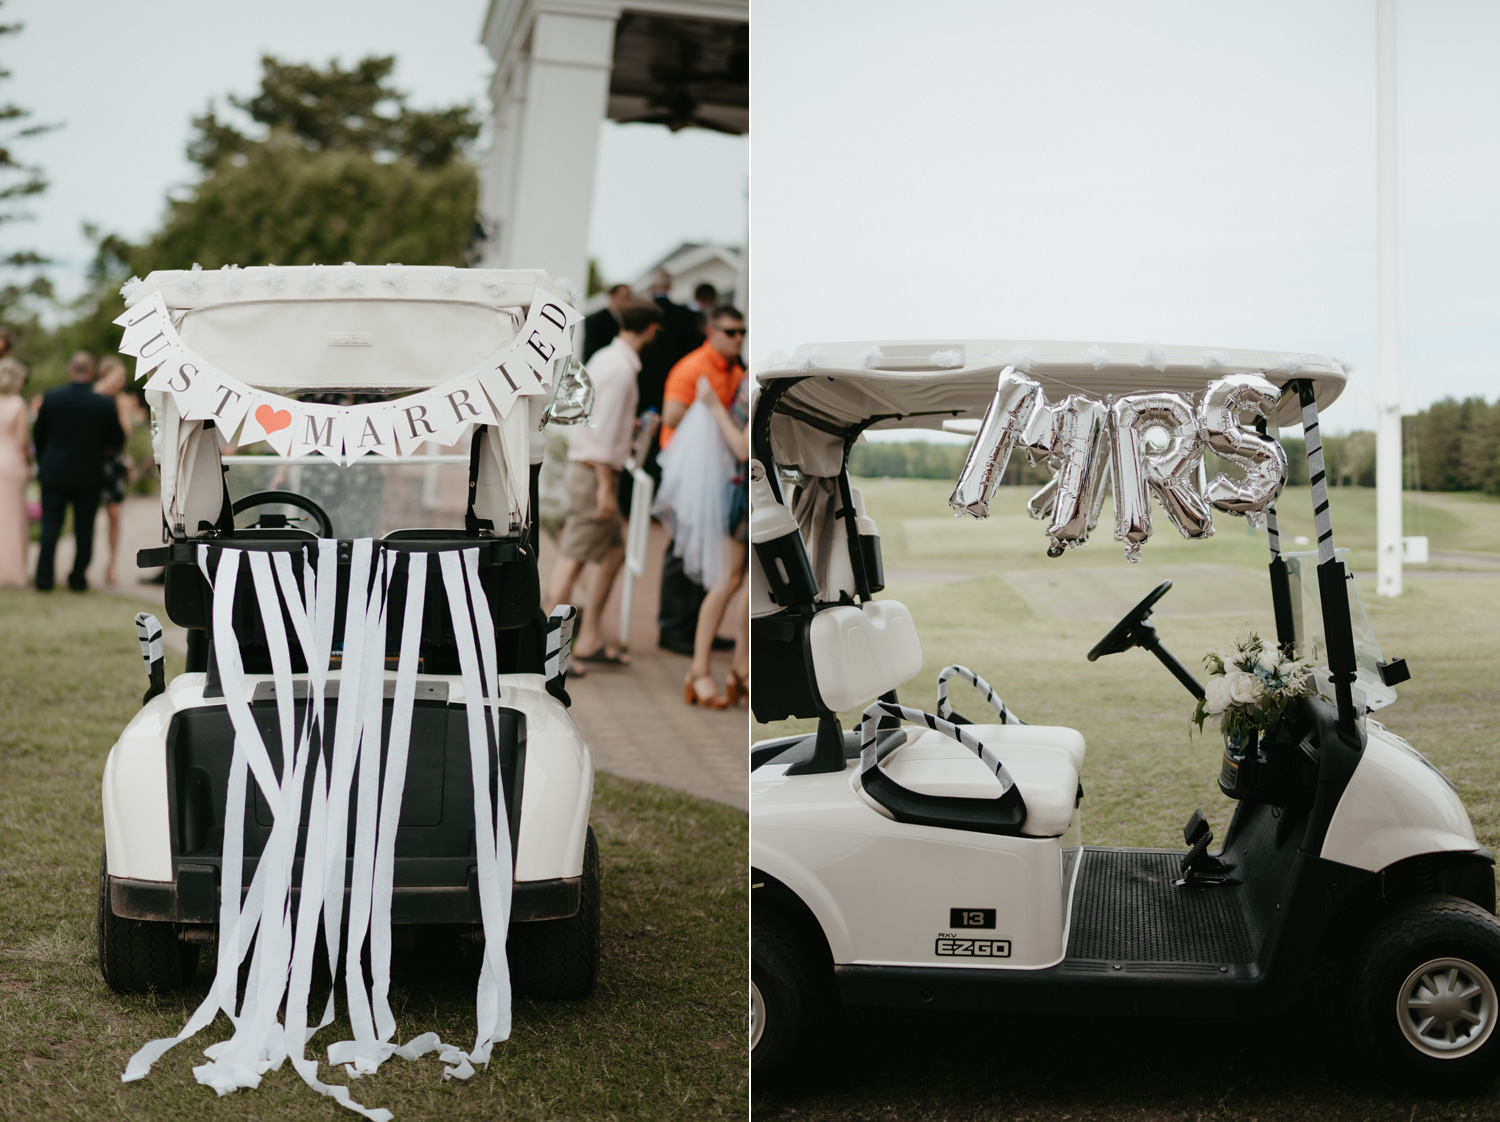 Getaway golf cart on wedding day